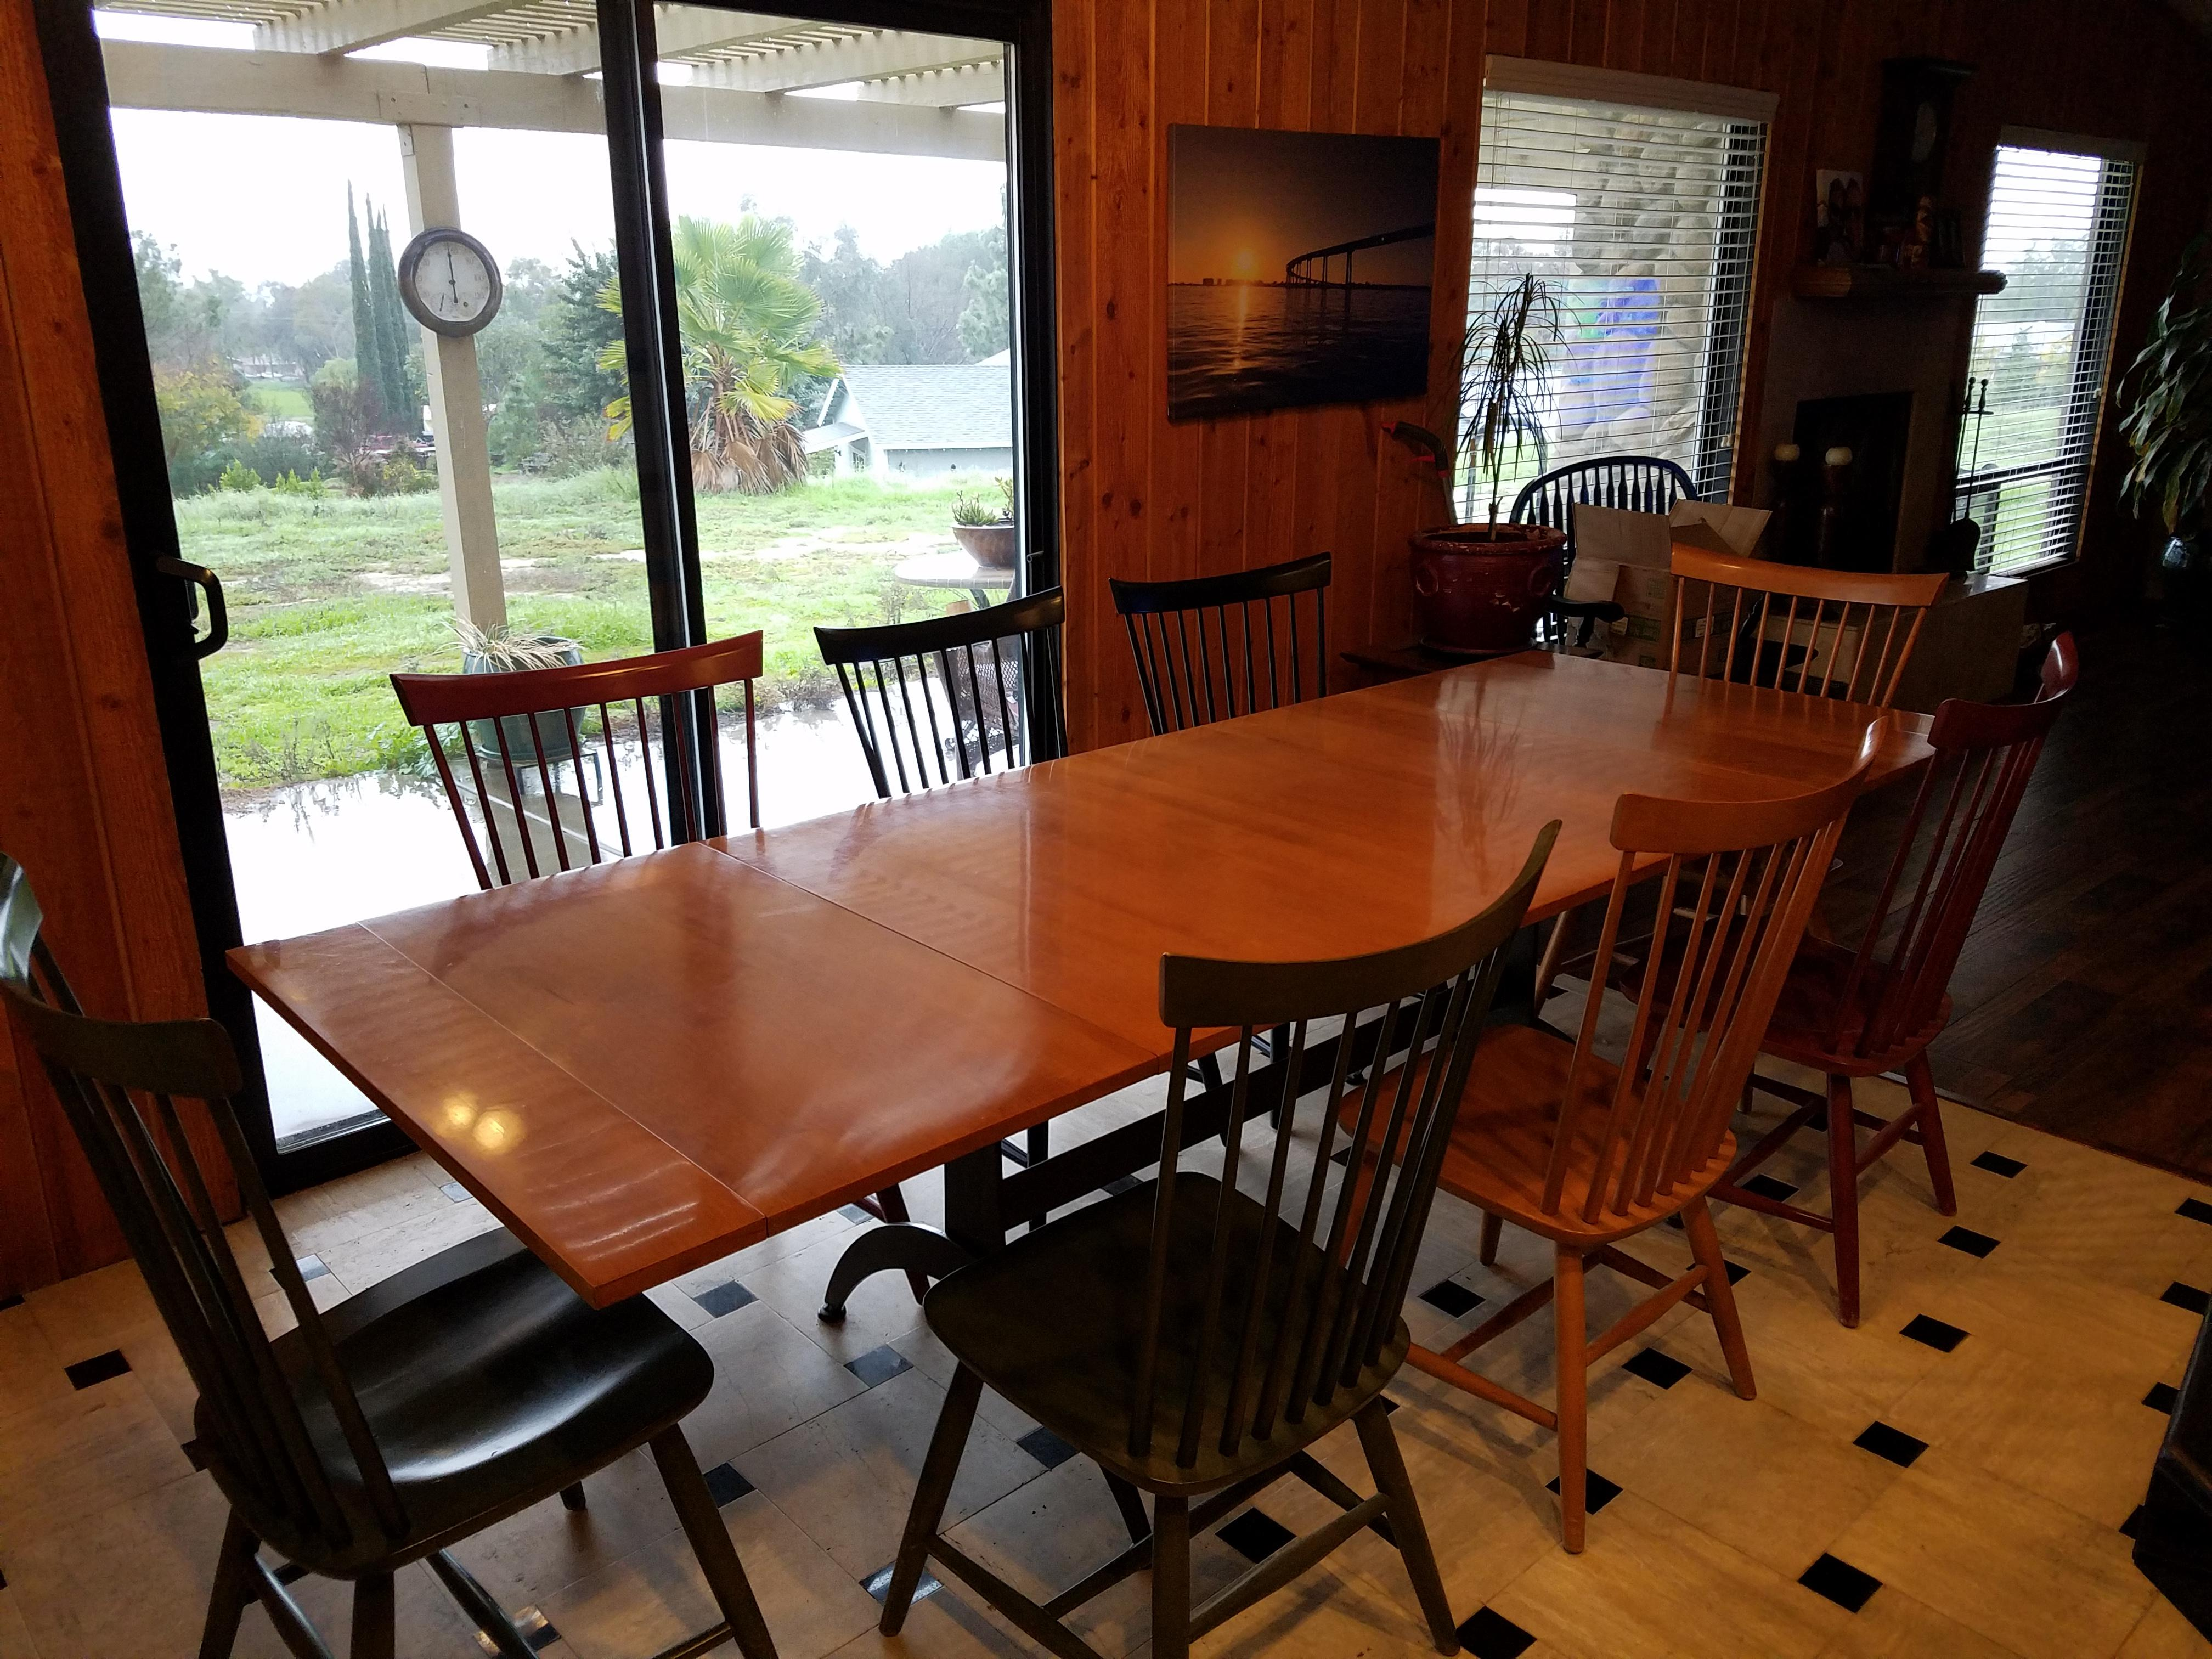 Ethan Allen Country Colors Dining Set With Table And 8 Fan Back Chairs    Image 6